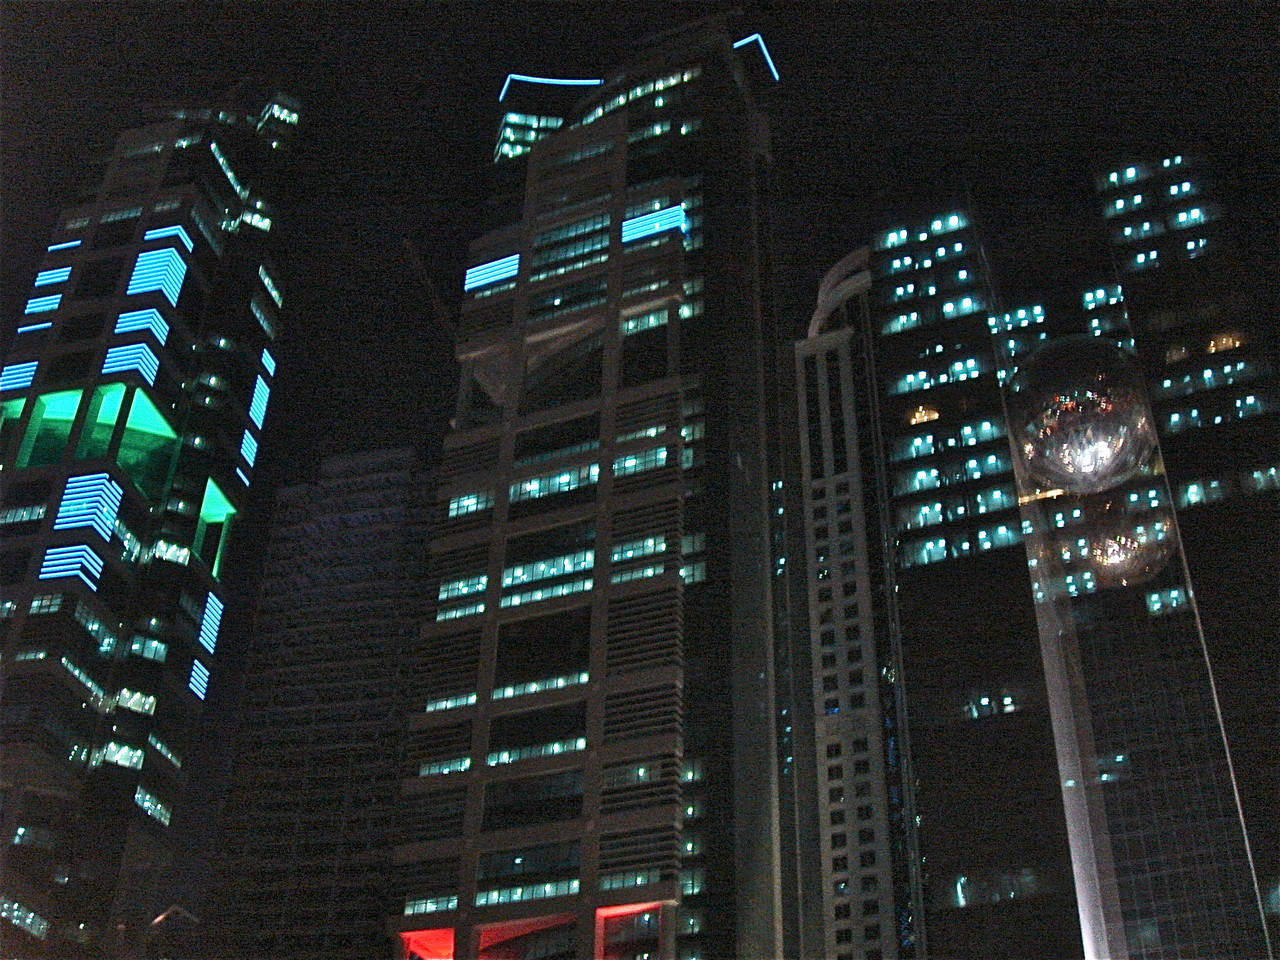 Lights on buildings at night, Downtown Doha